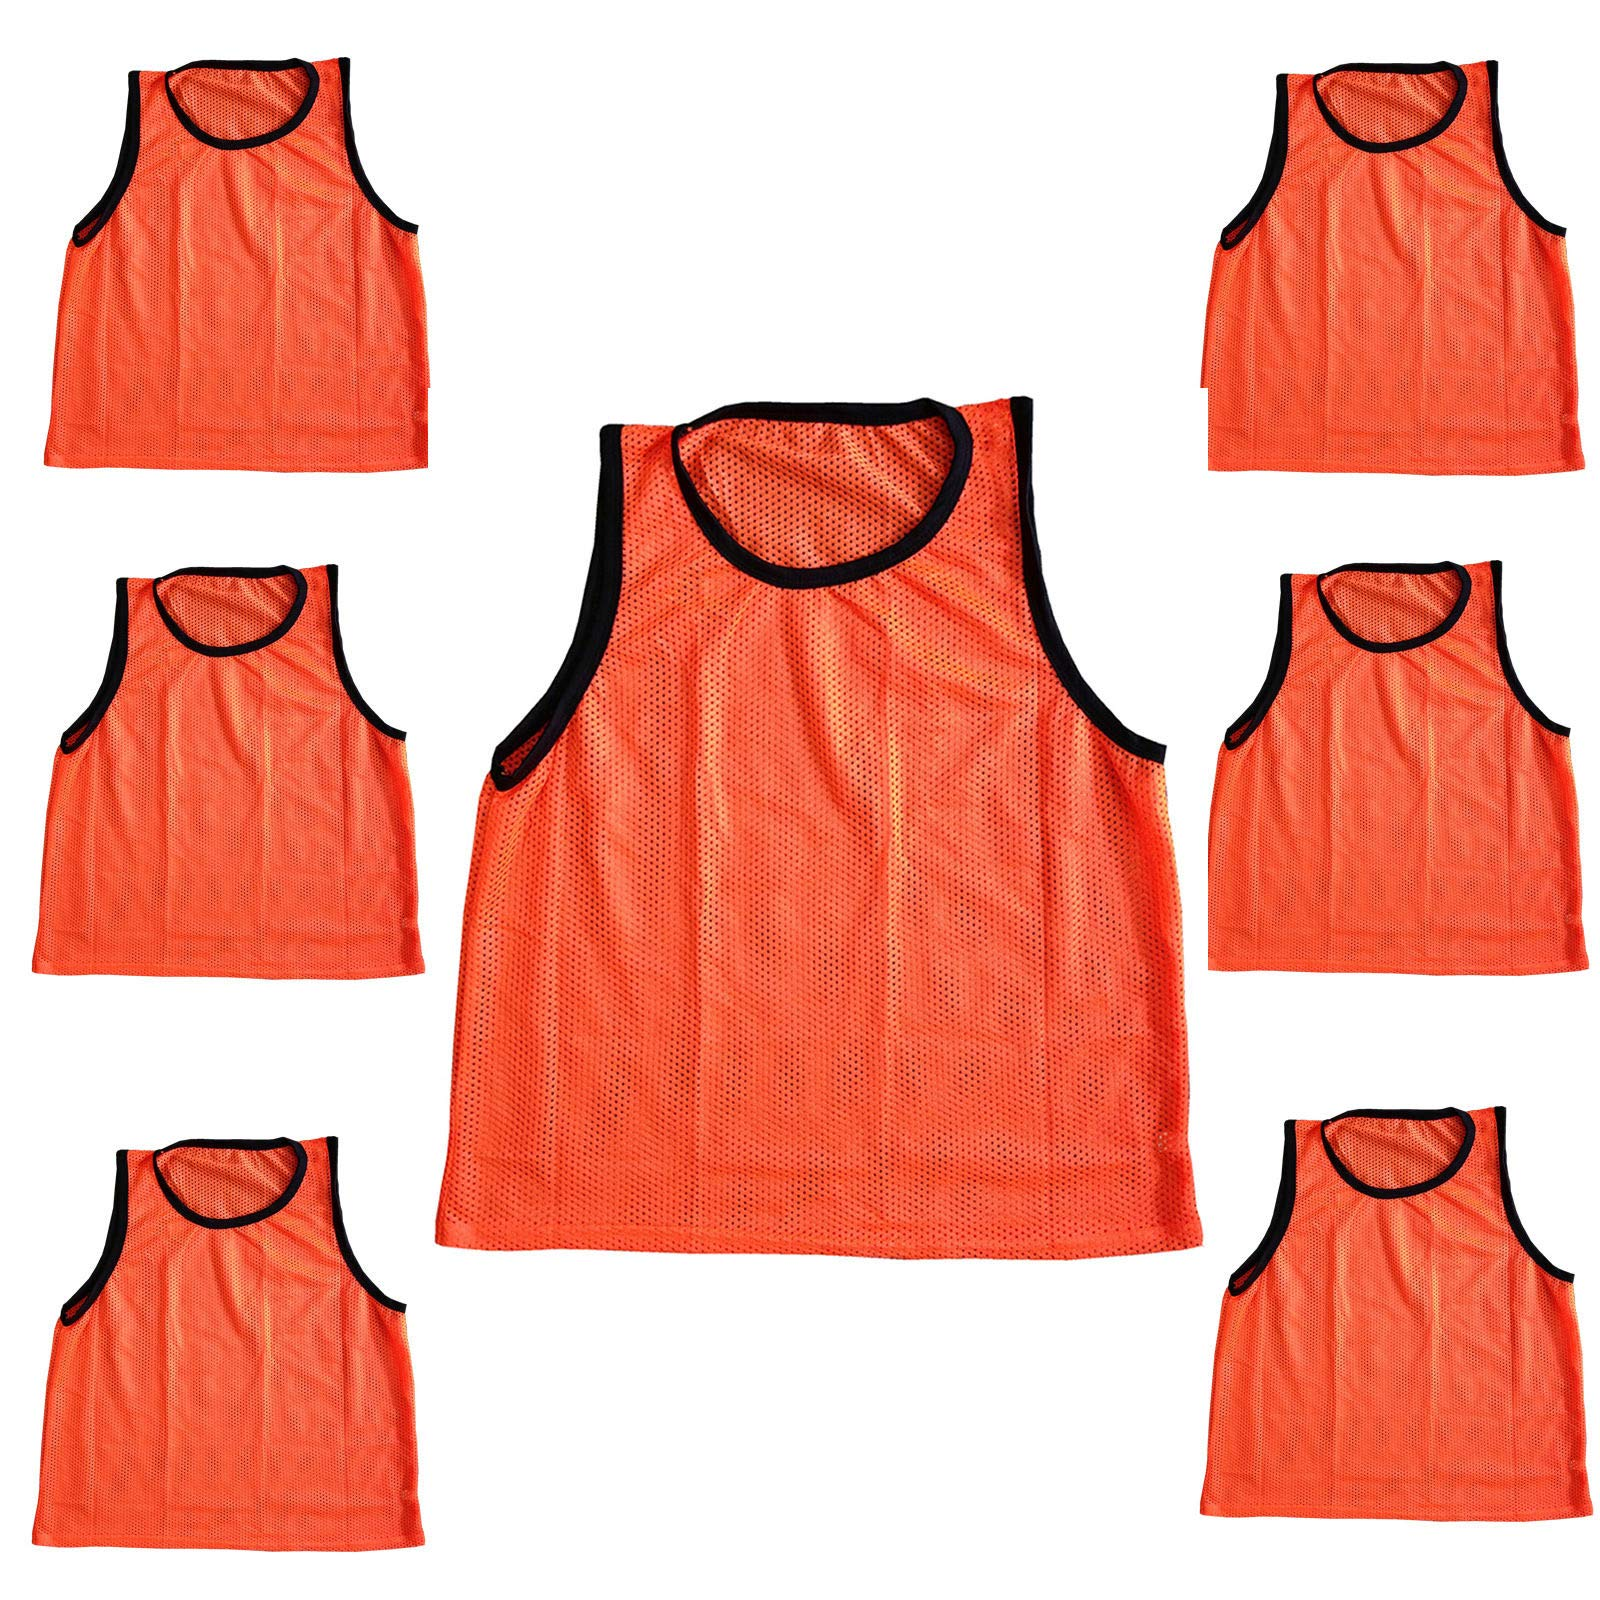 Bright Sun 6 pcs Scrimmage Vests Pinnies Soccer Youth Orange #BDMN by Bright Sun